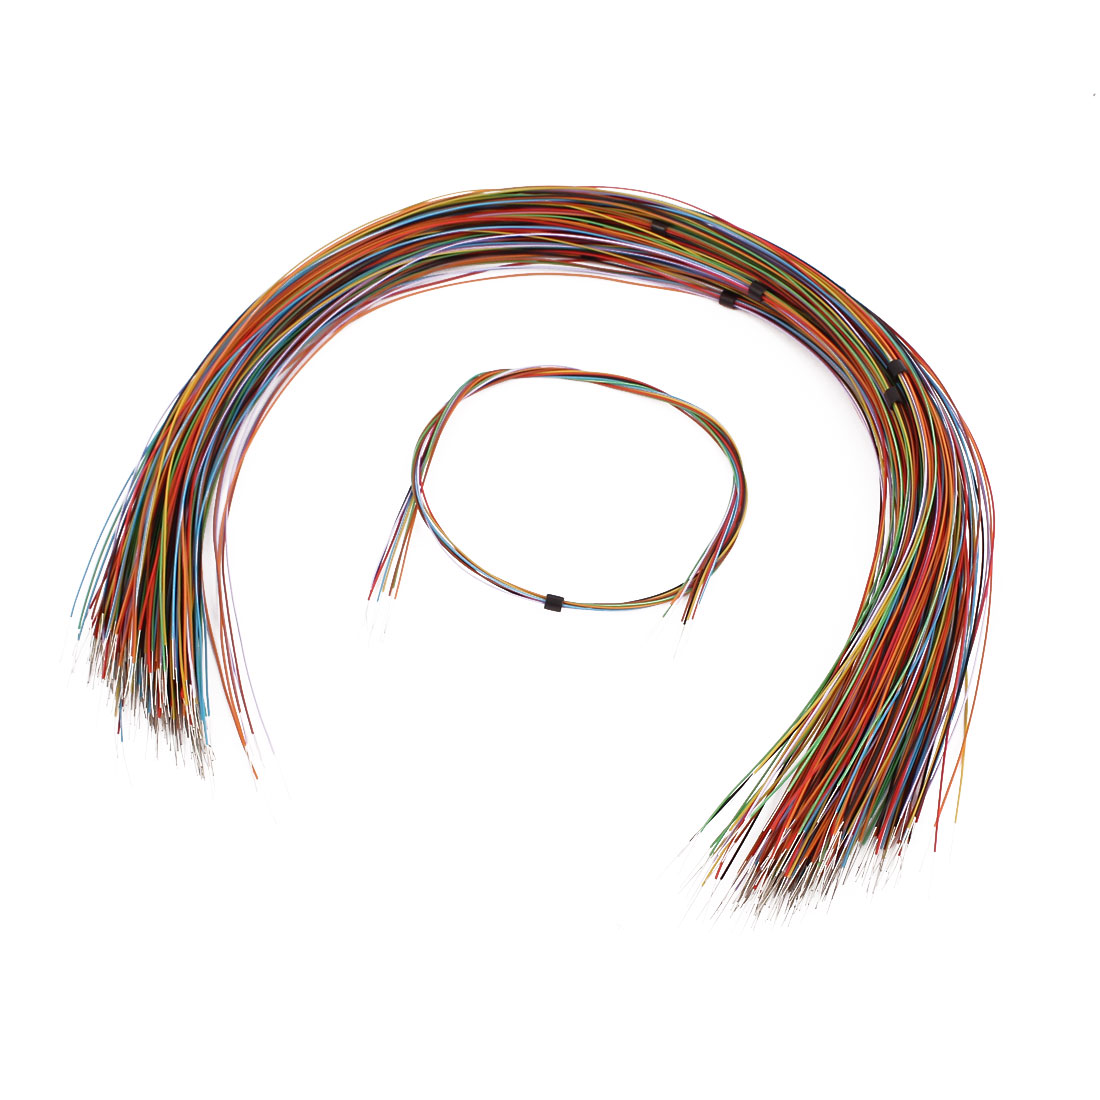 High Temperature Resistant Wrapping Wire Cable 365mm x 0.4mm Multicolor 200 Pcs